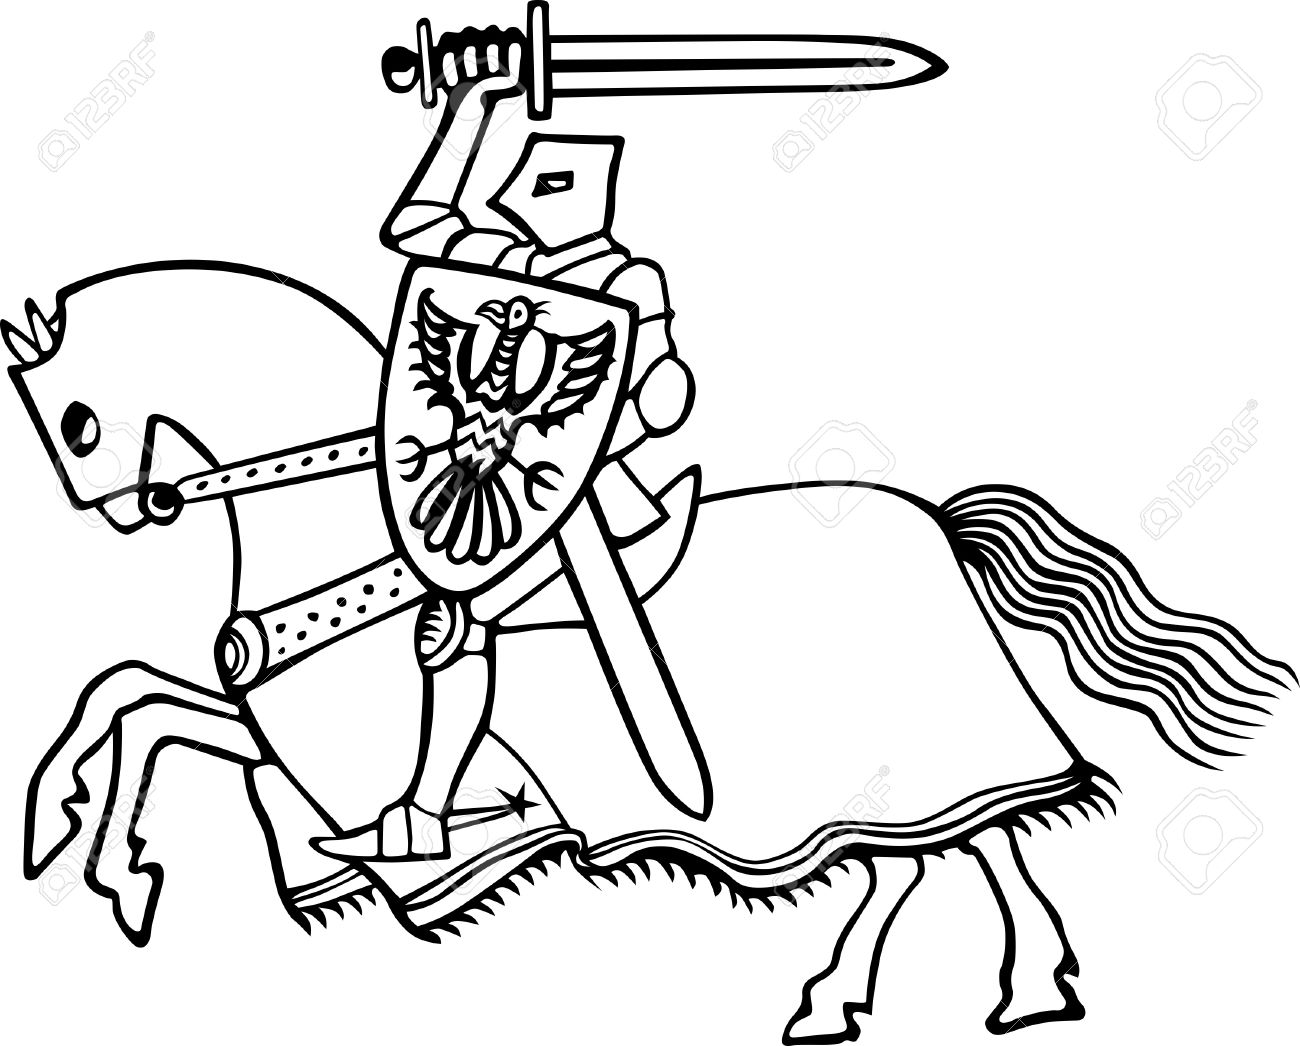 how to draw a knight on a horse horseshoesandhorseshoeing 121jpg 8811193 knight horse draw knight on to a a how